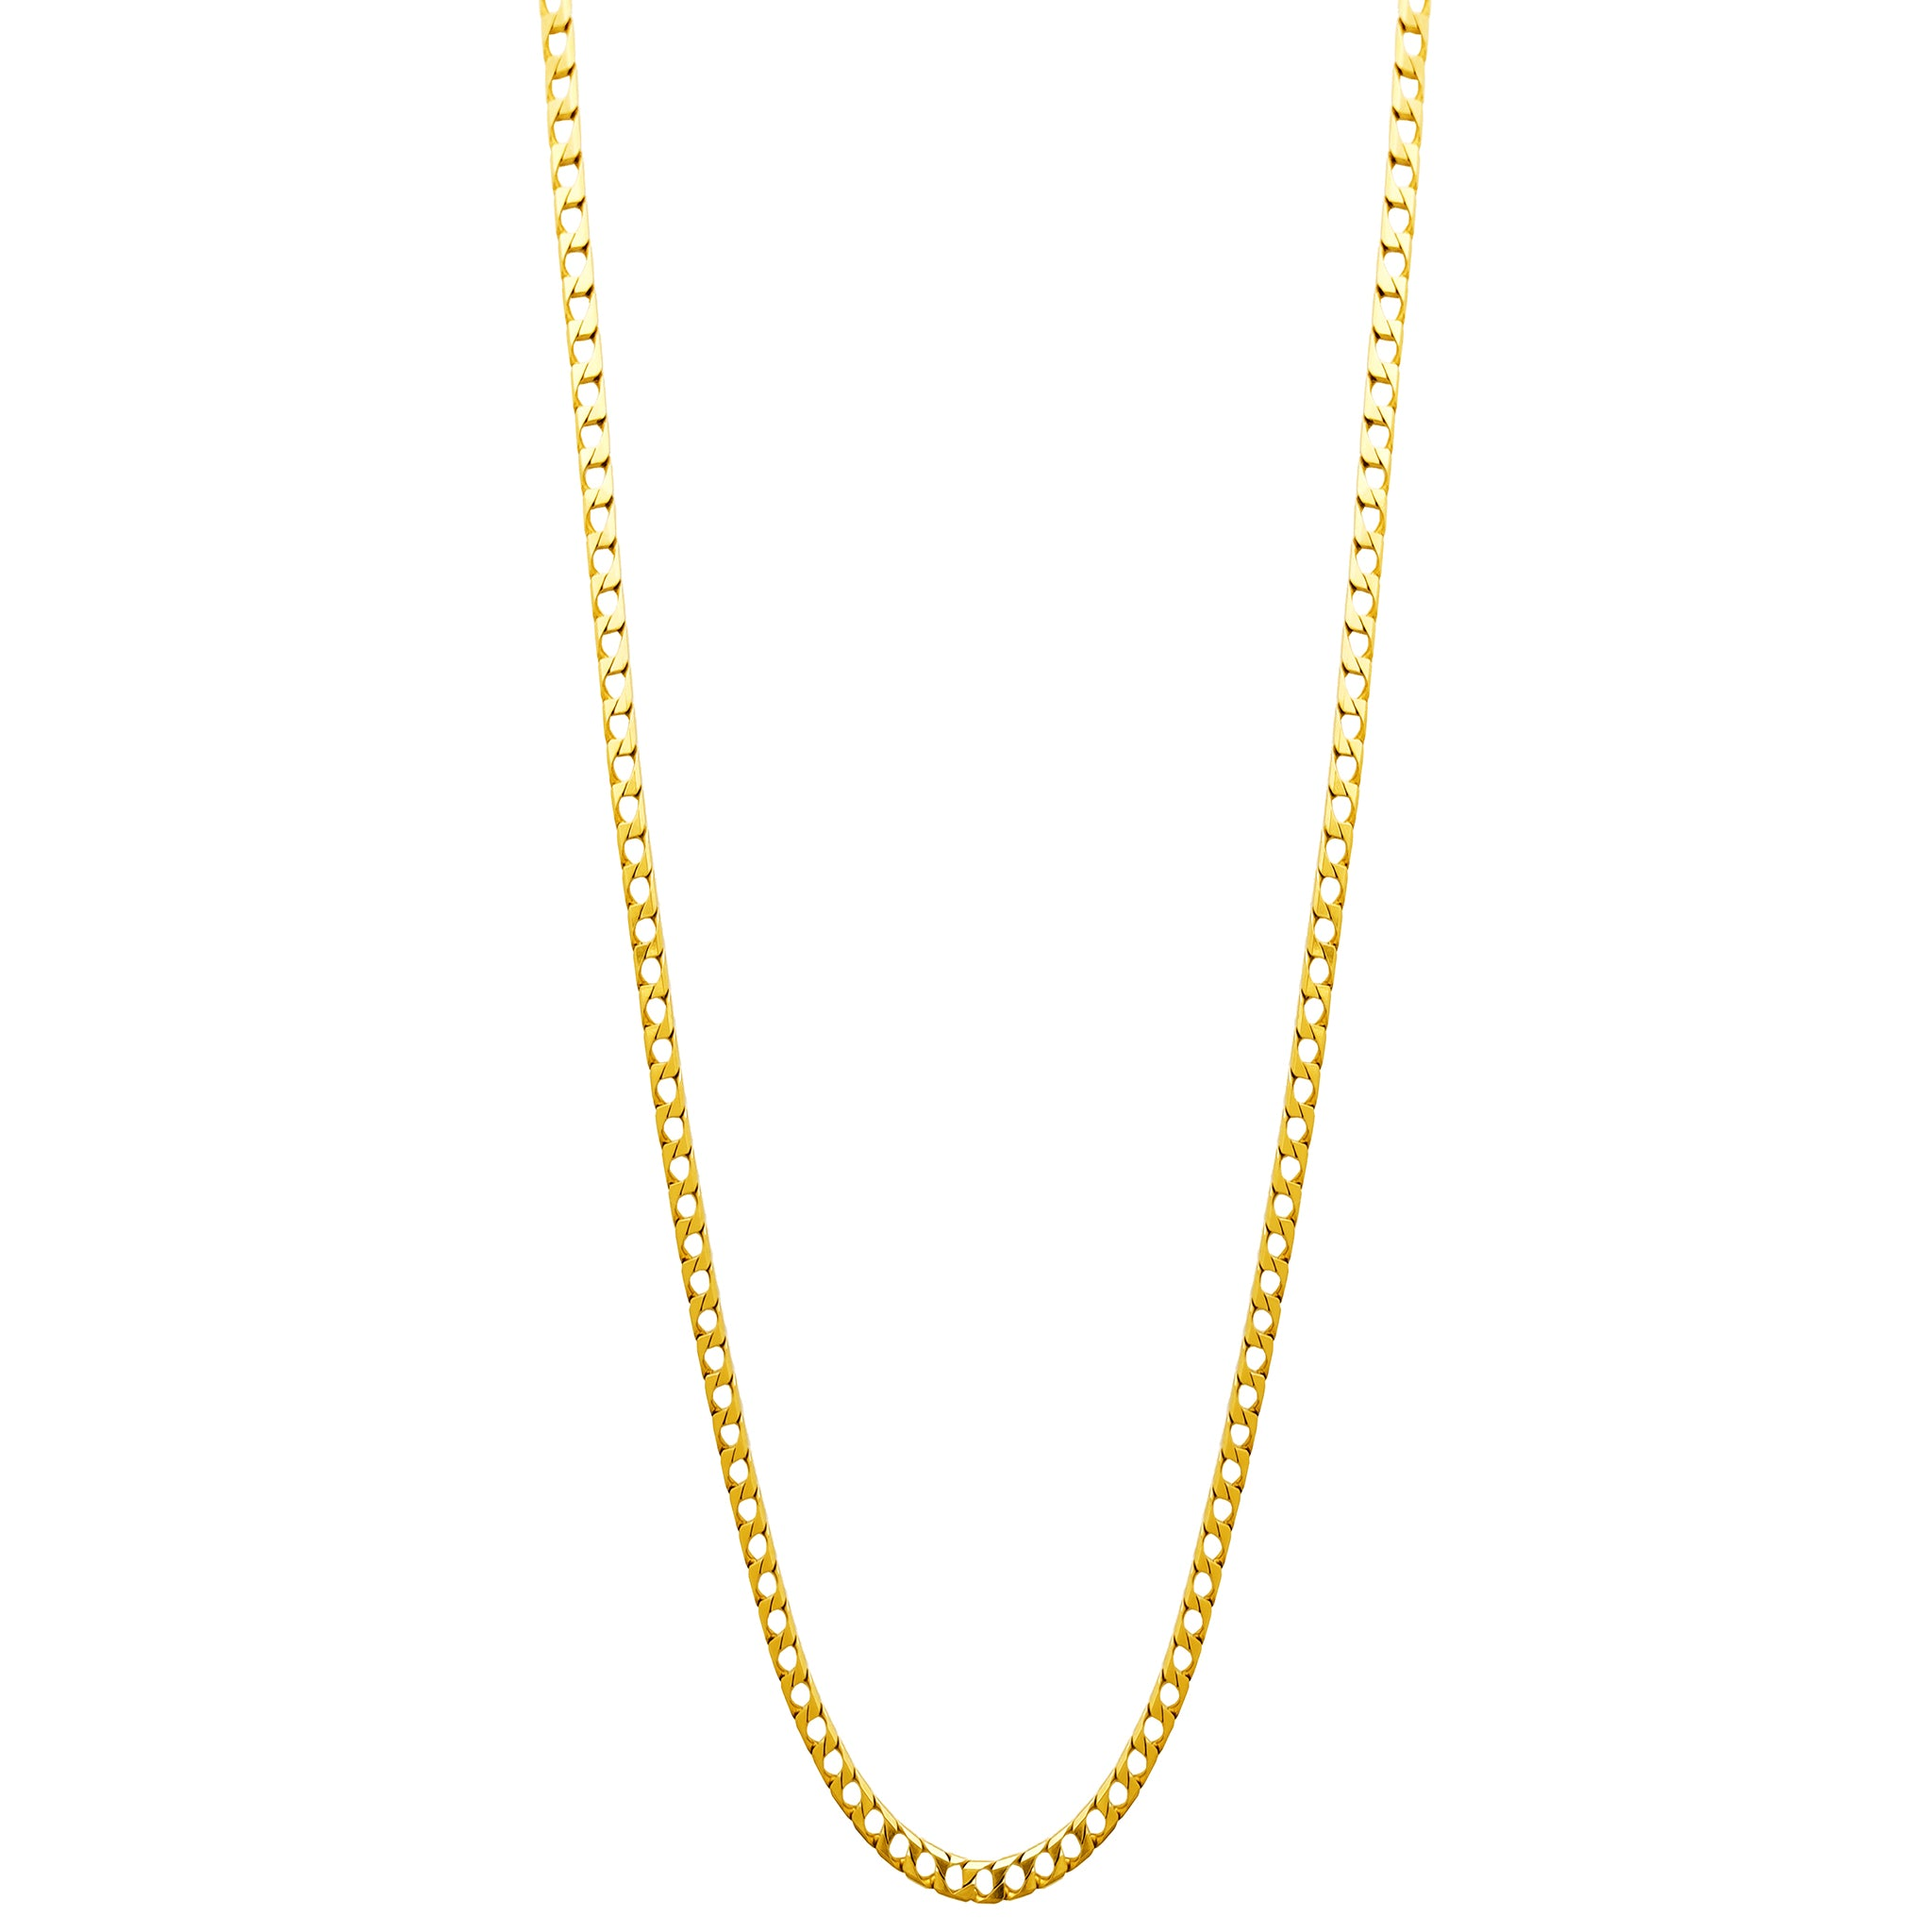 Square Curb Chain (14K)